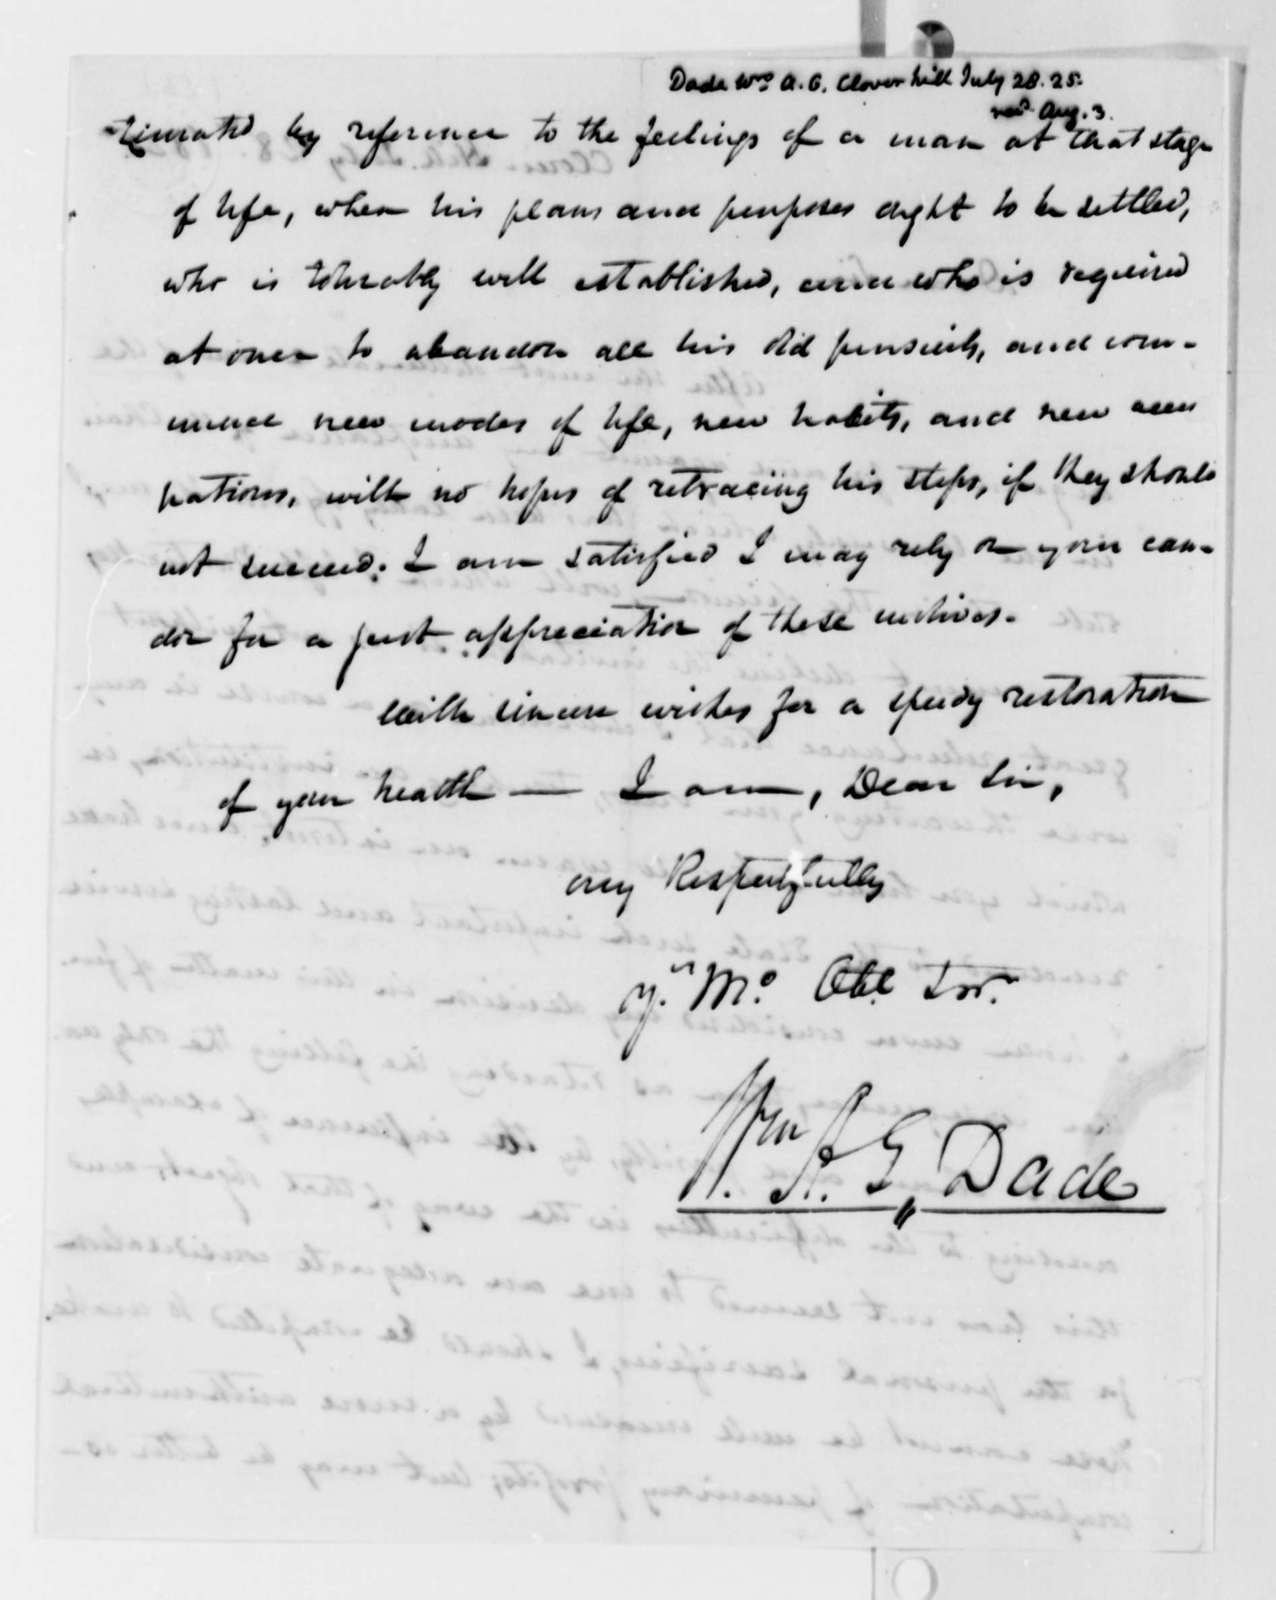 William A. G. Dade to Thomas Jefferson, July 28, 1825